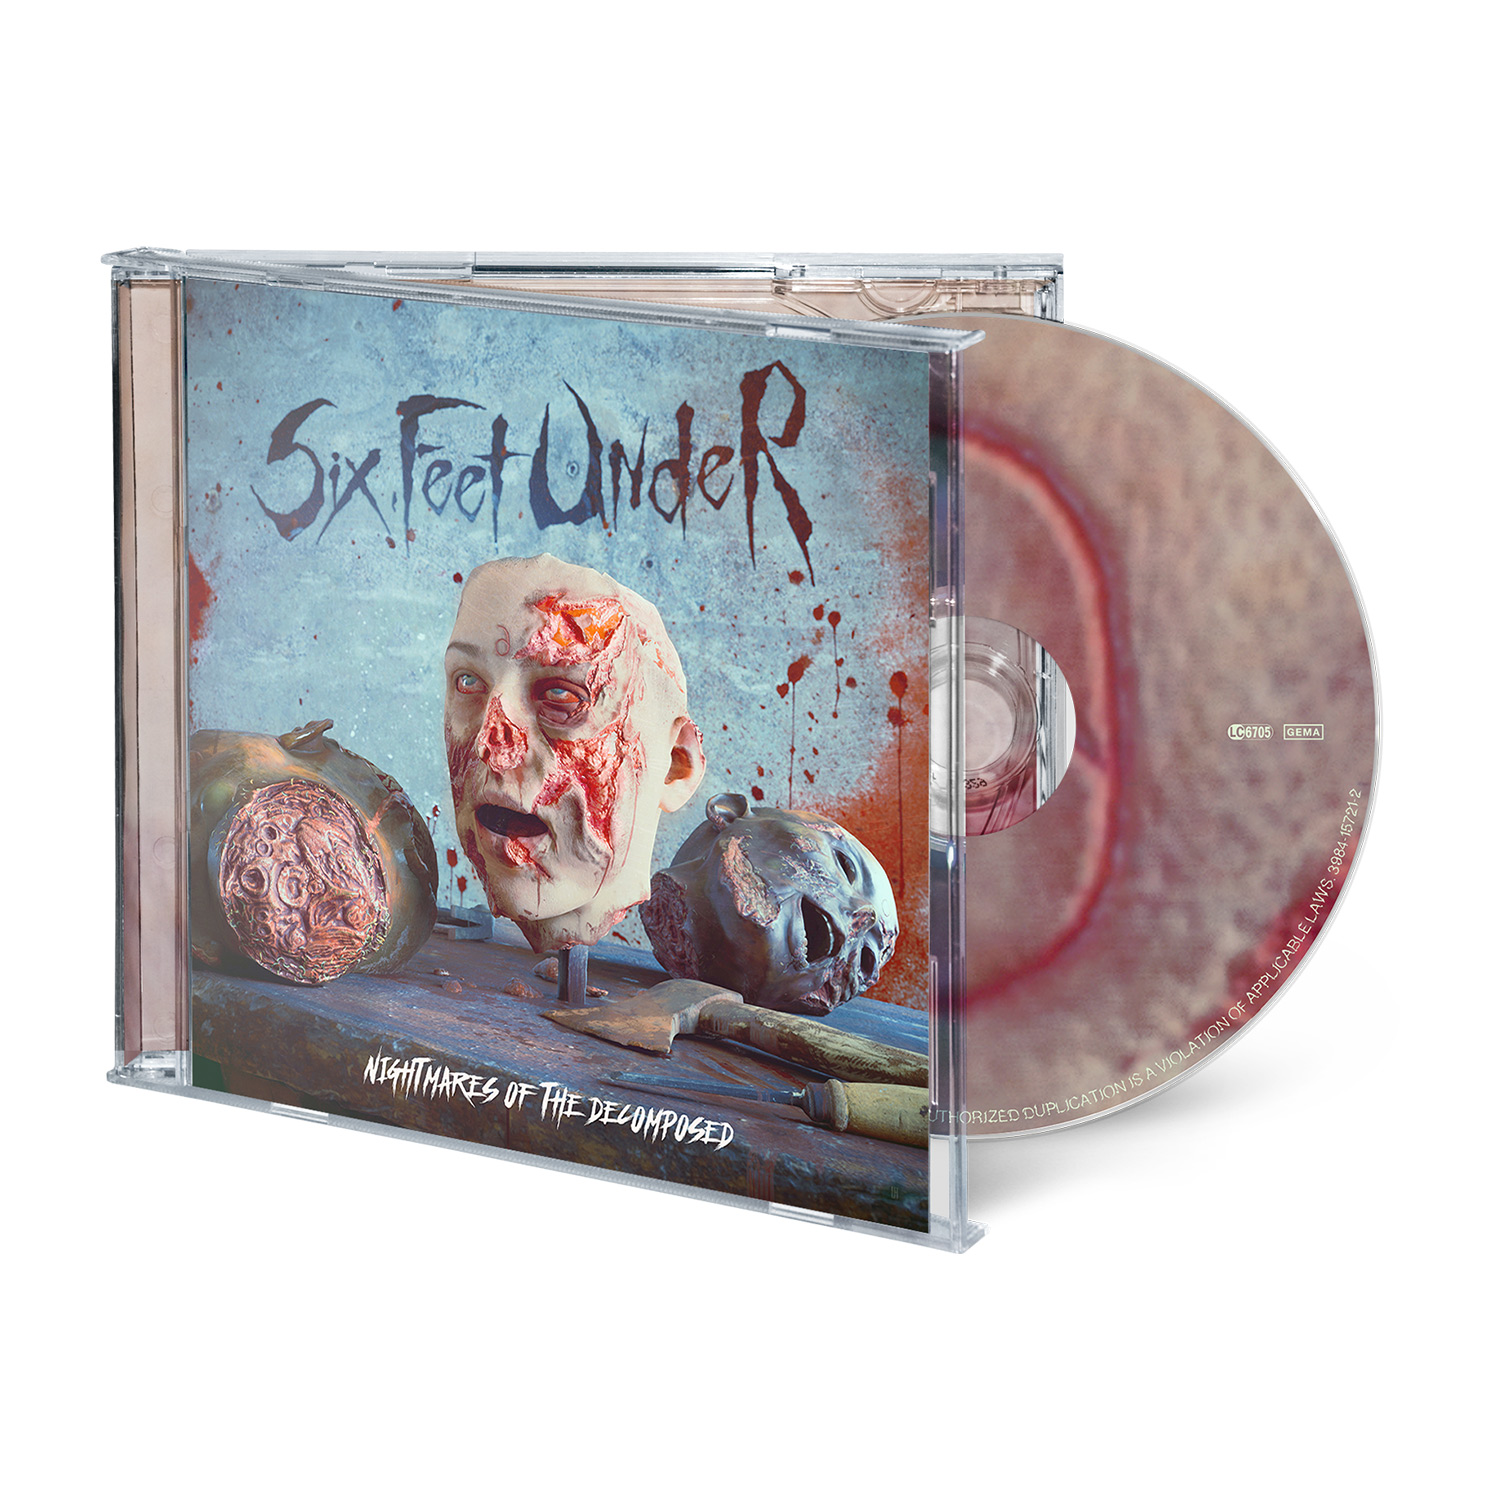 Nightmares of the Decomposed - Deluxe CD Bundle - Bloody Skin